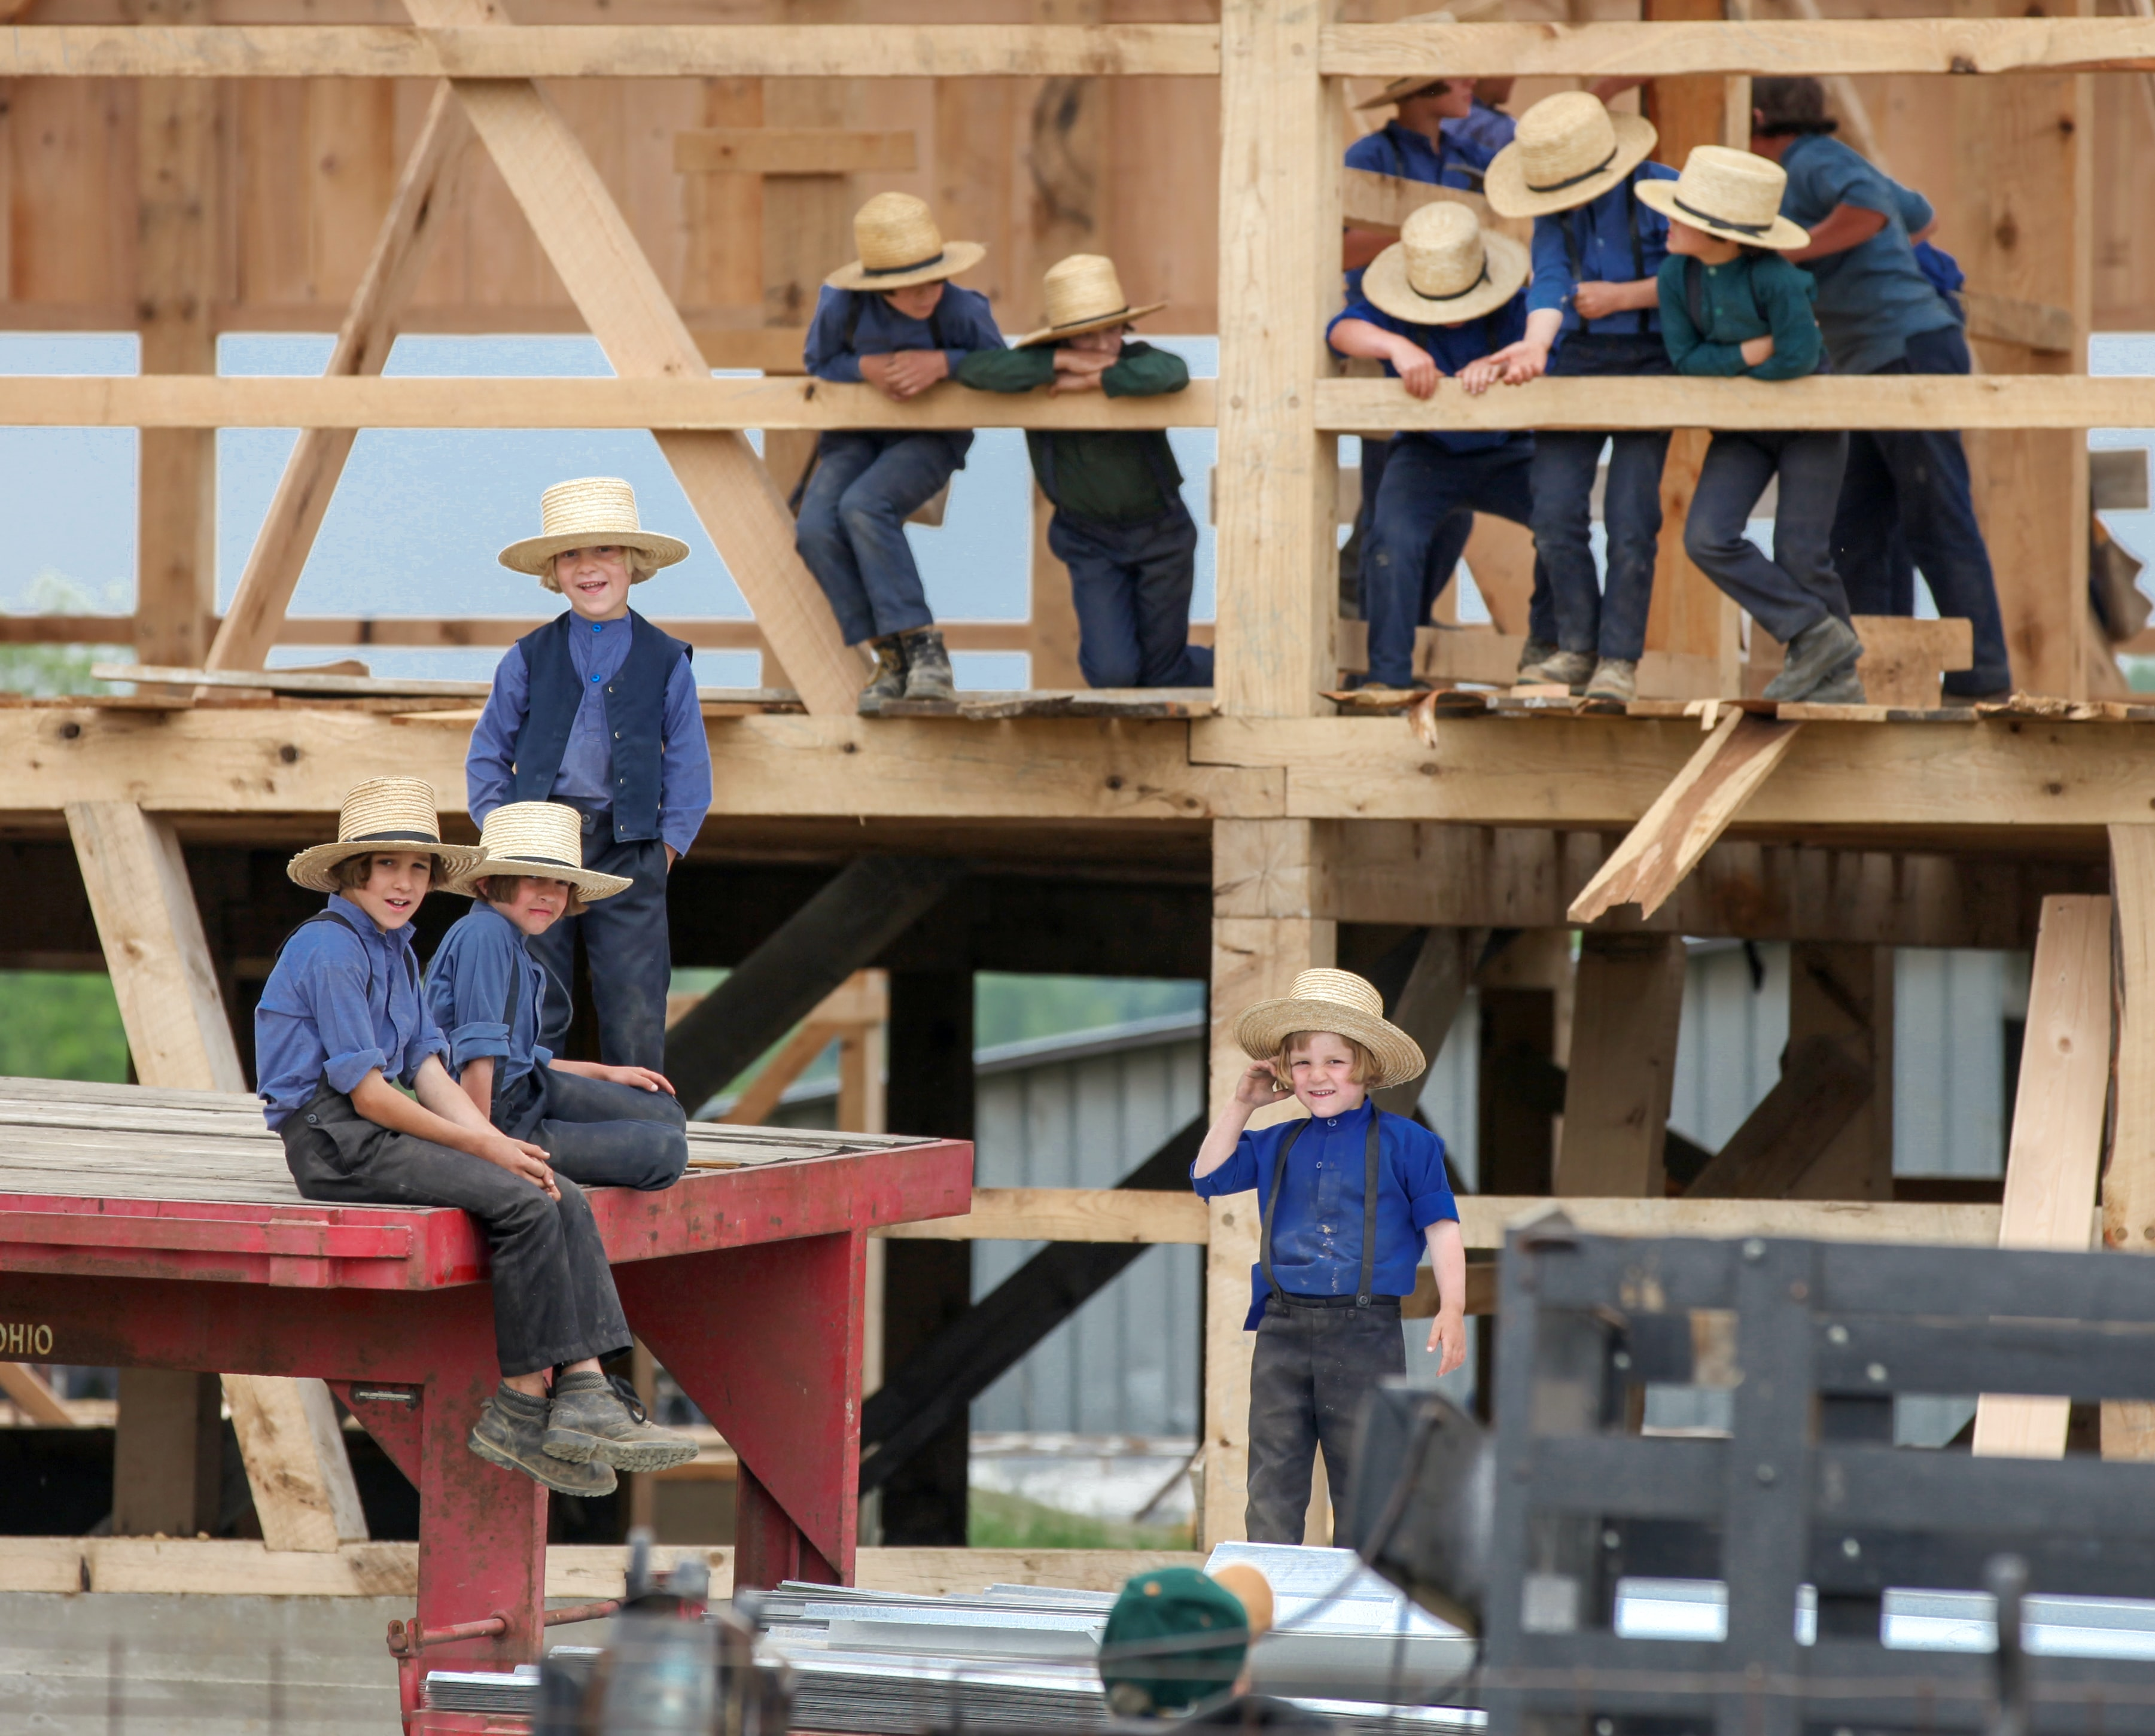 group of children wearing blue shirts and pants climbing on wood during daytime